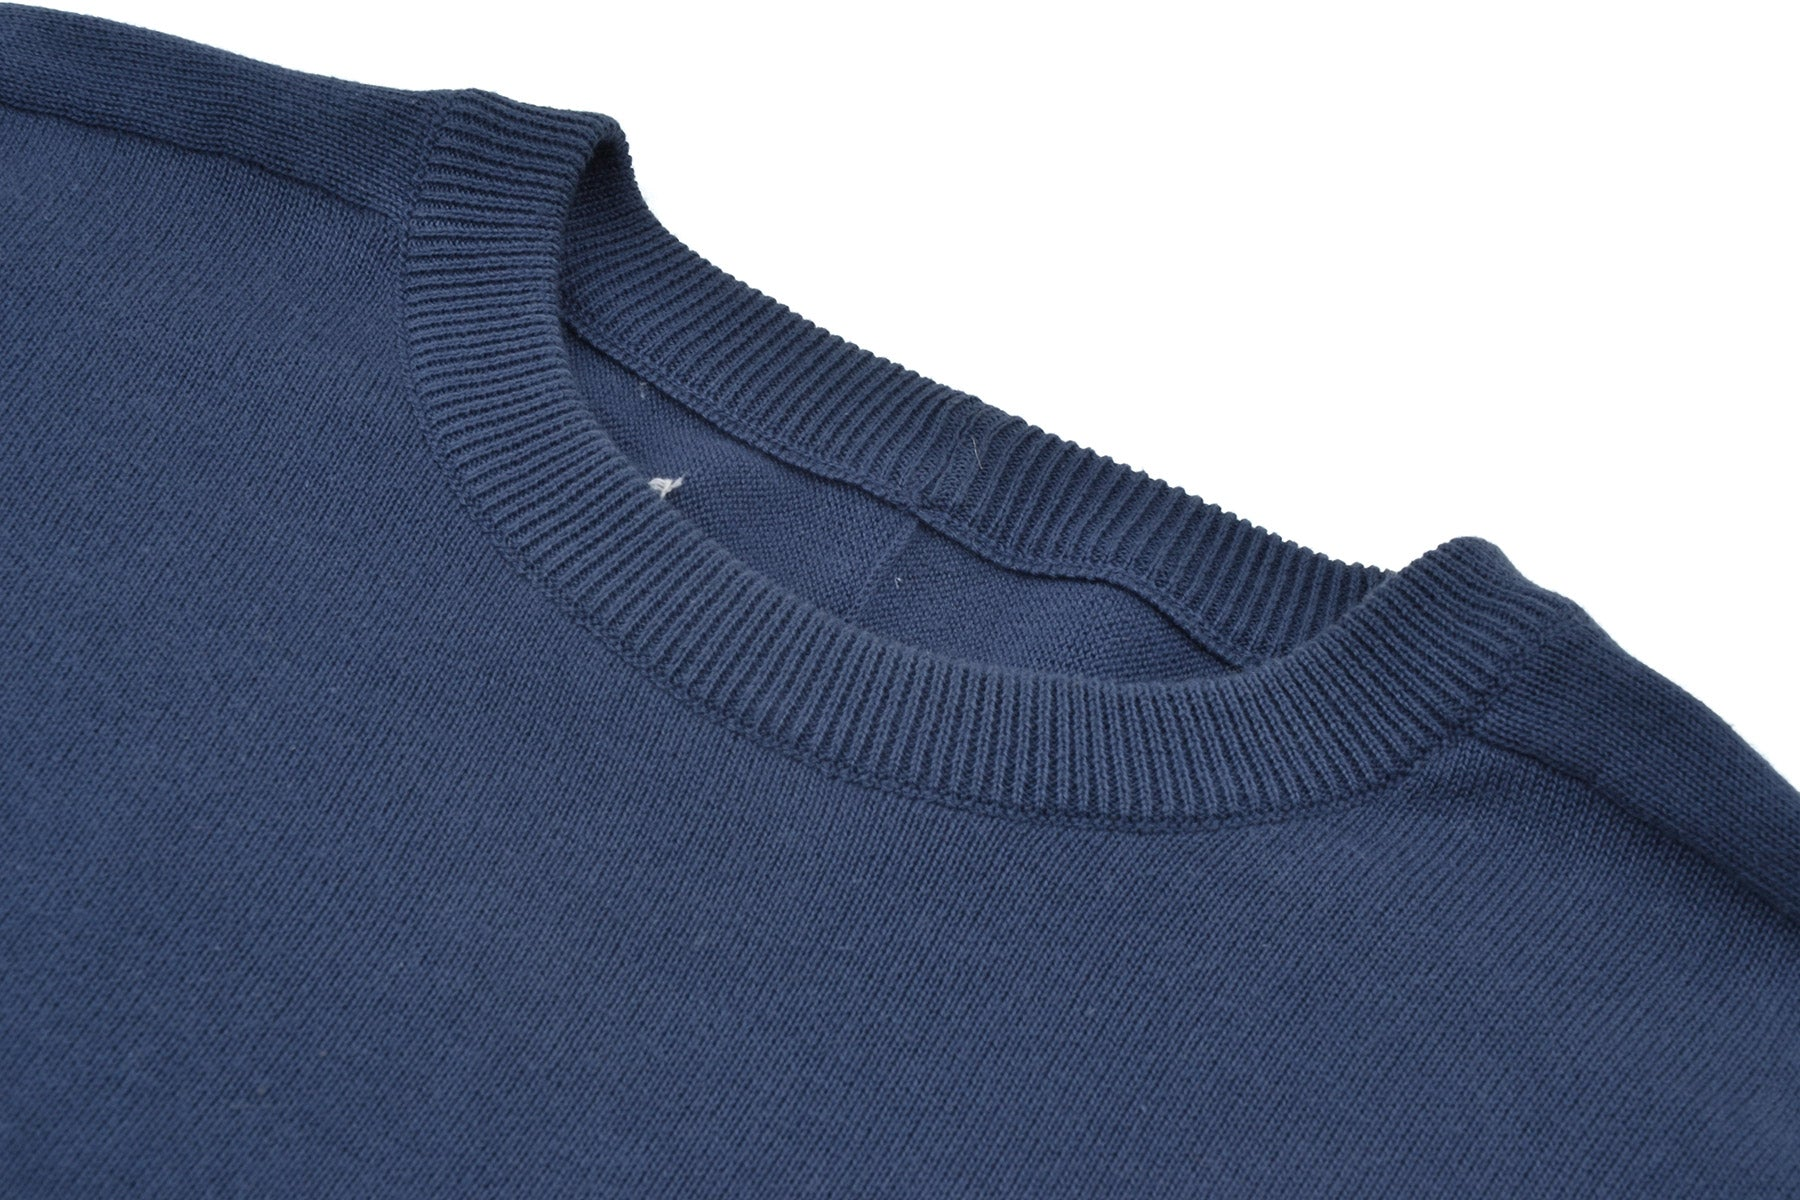 2007 S/S COTTON REPLICA JUMPER WITH ELBOW SUEDE PATCHES